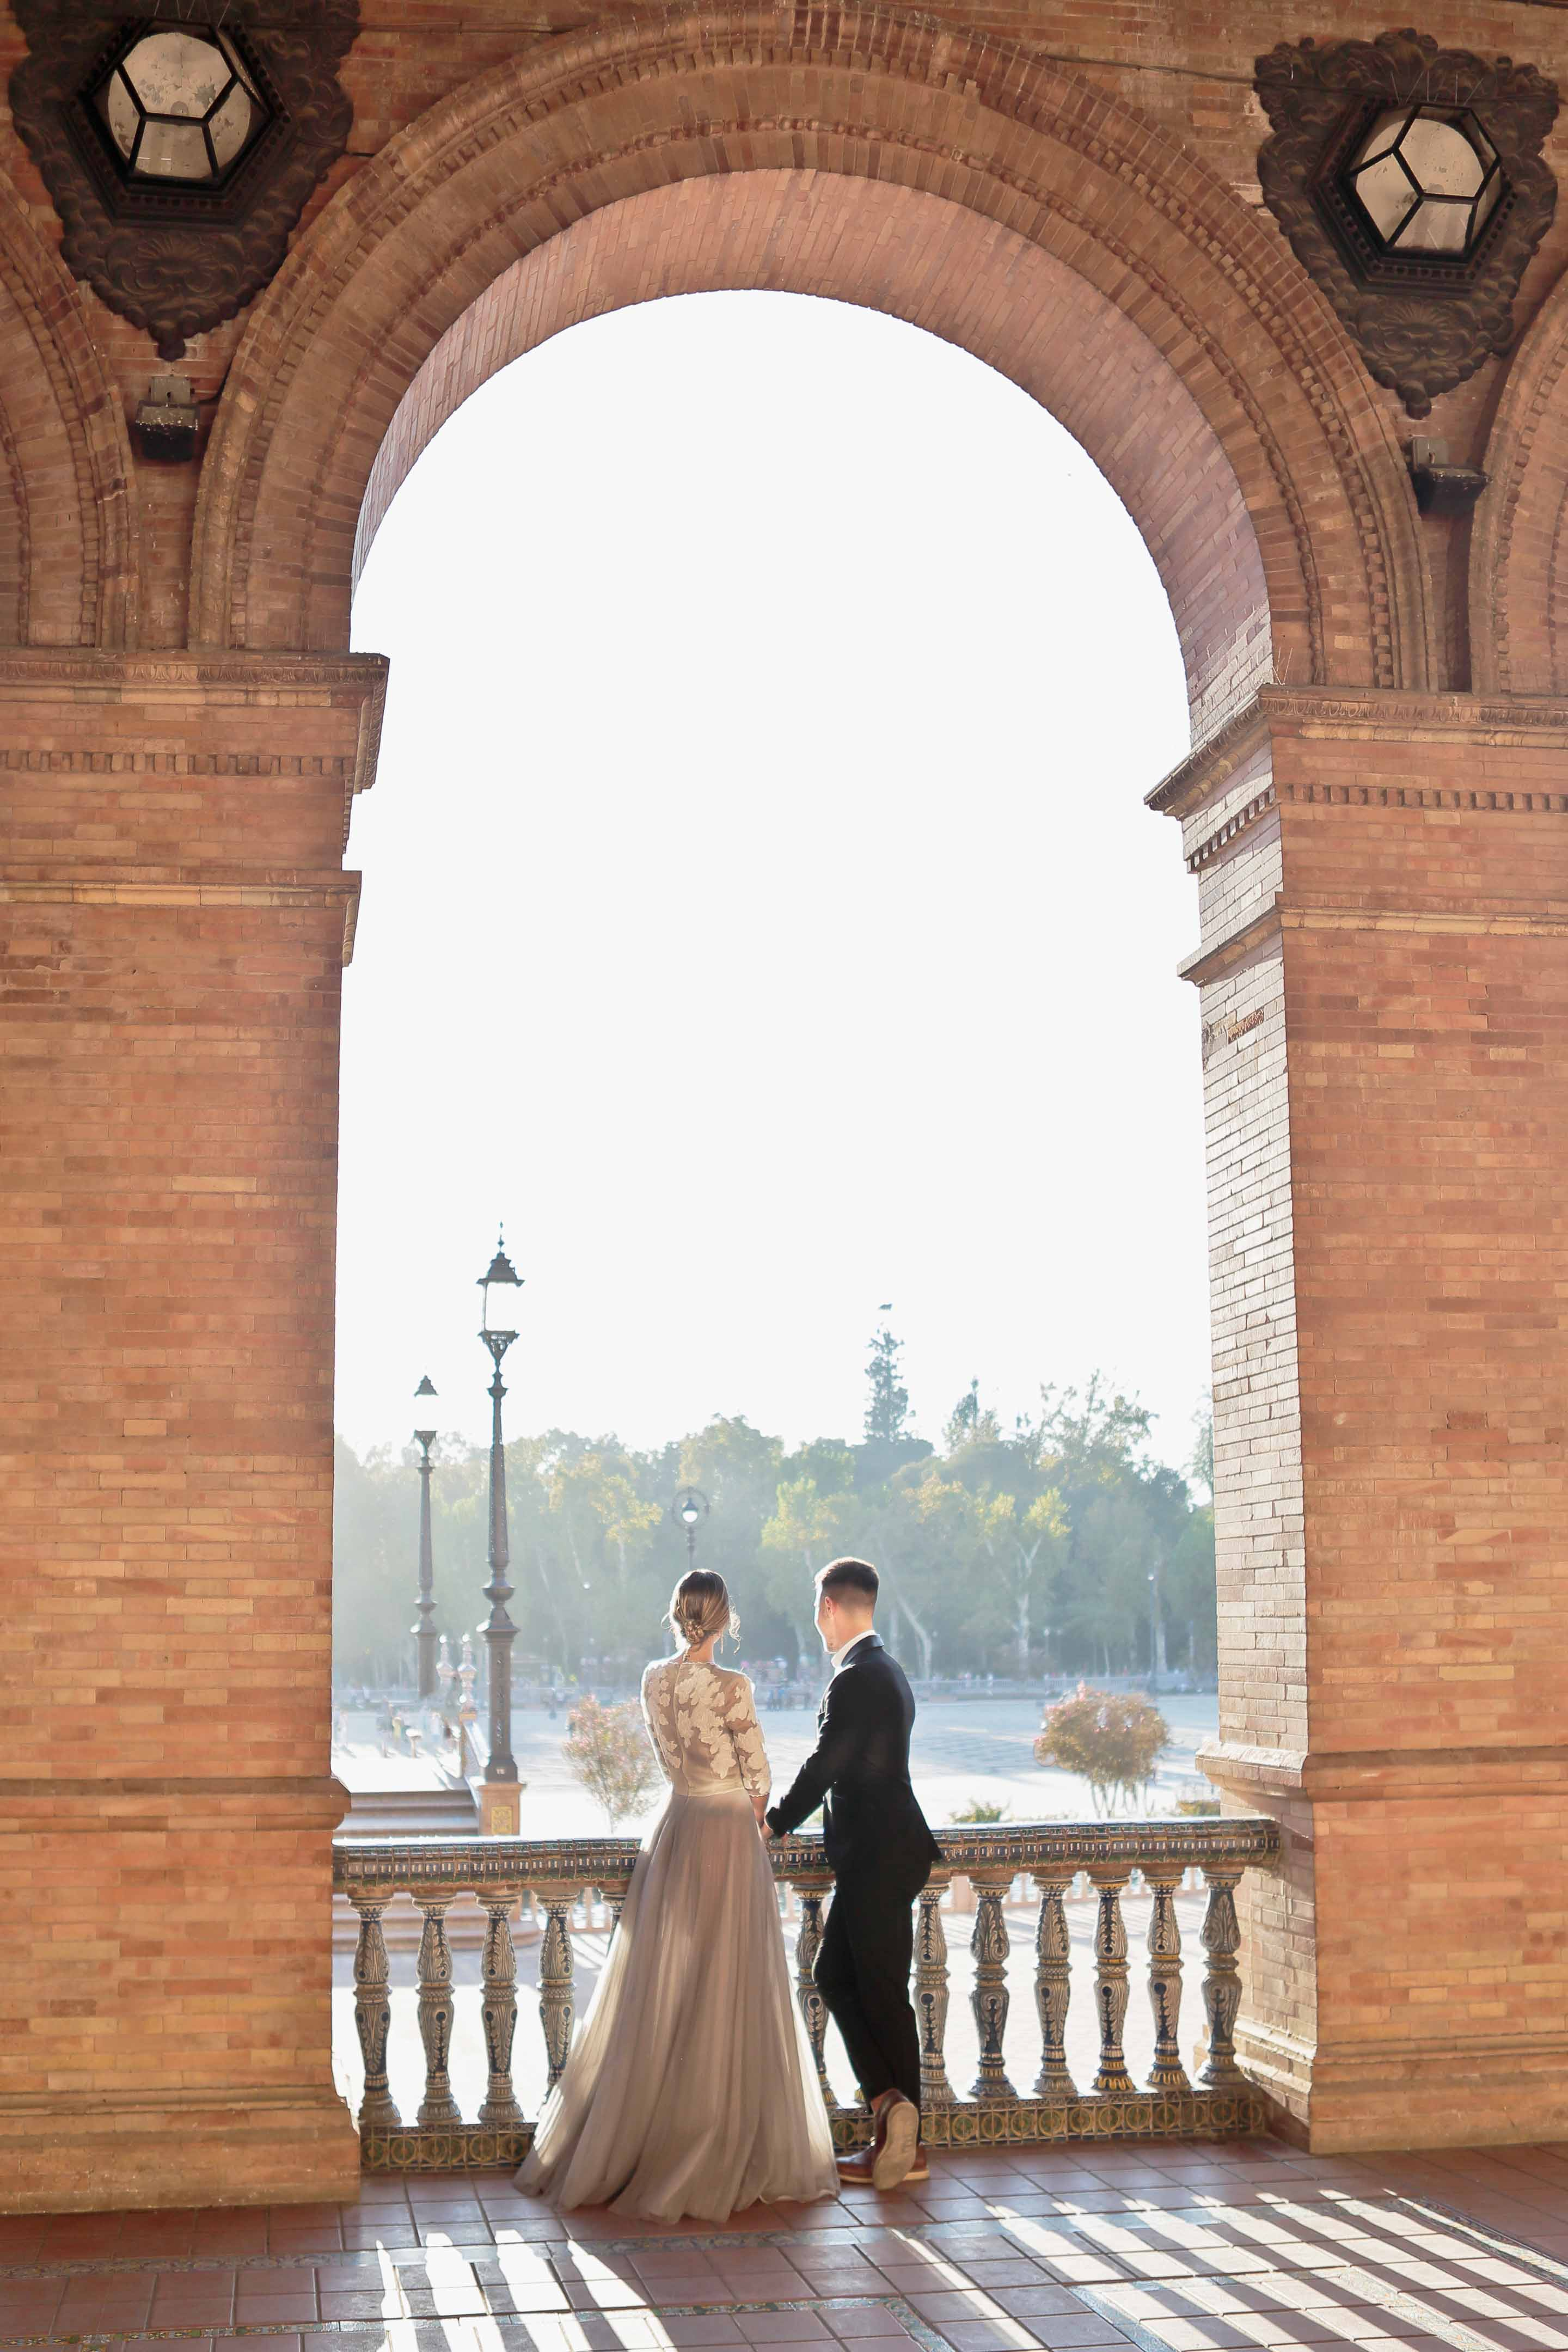 lovebirds stolling under the majestic arches of plaza de espana in seville